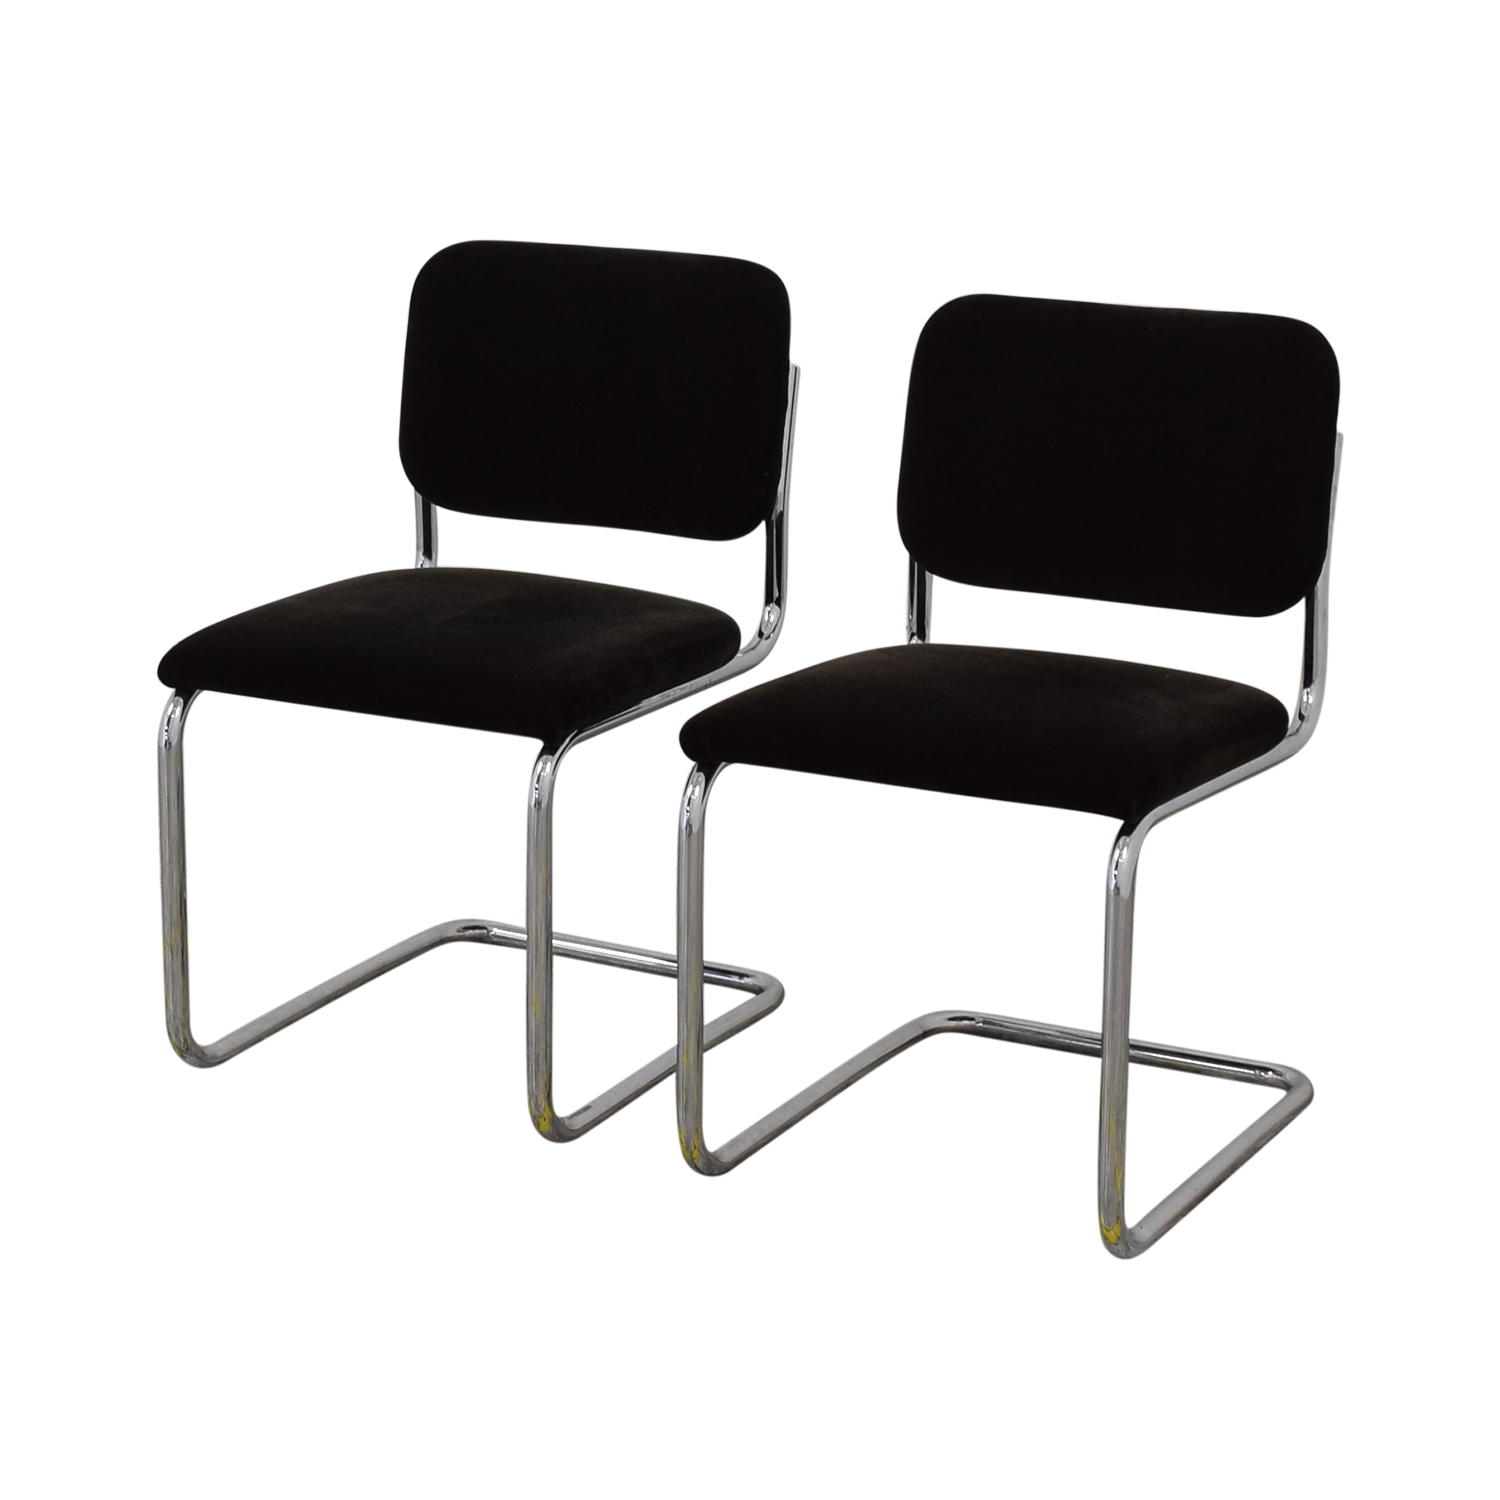 Pace Collection Knoll Marcel Breuer Cesca Chairs Dining Chairs